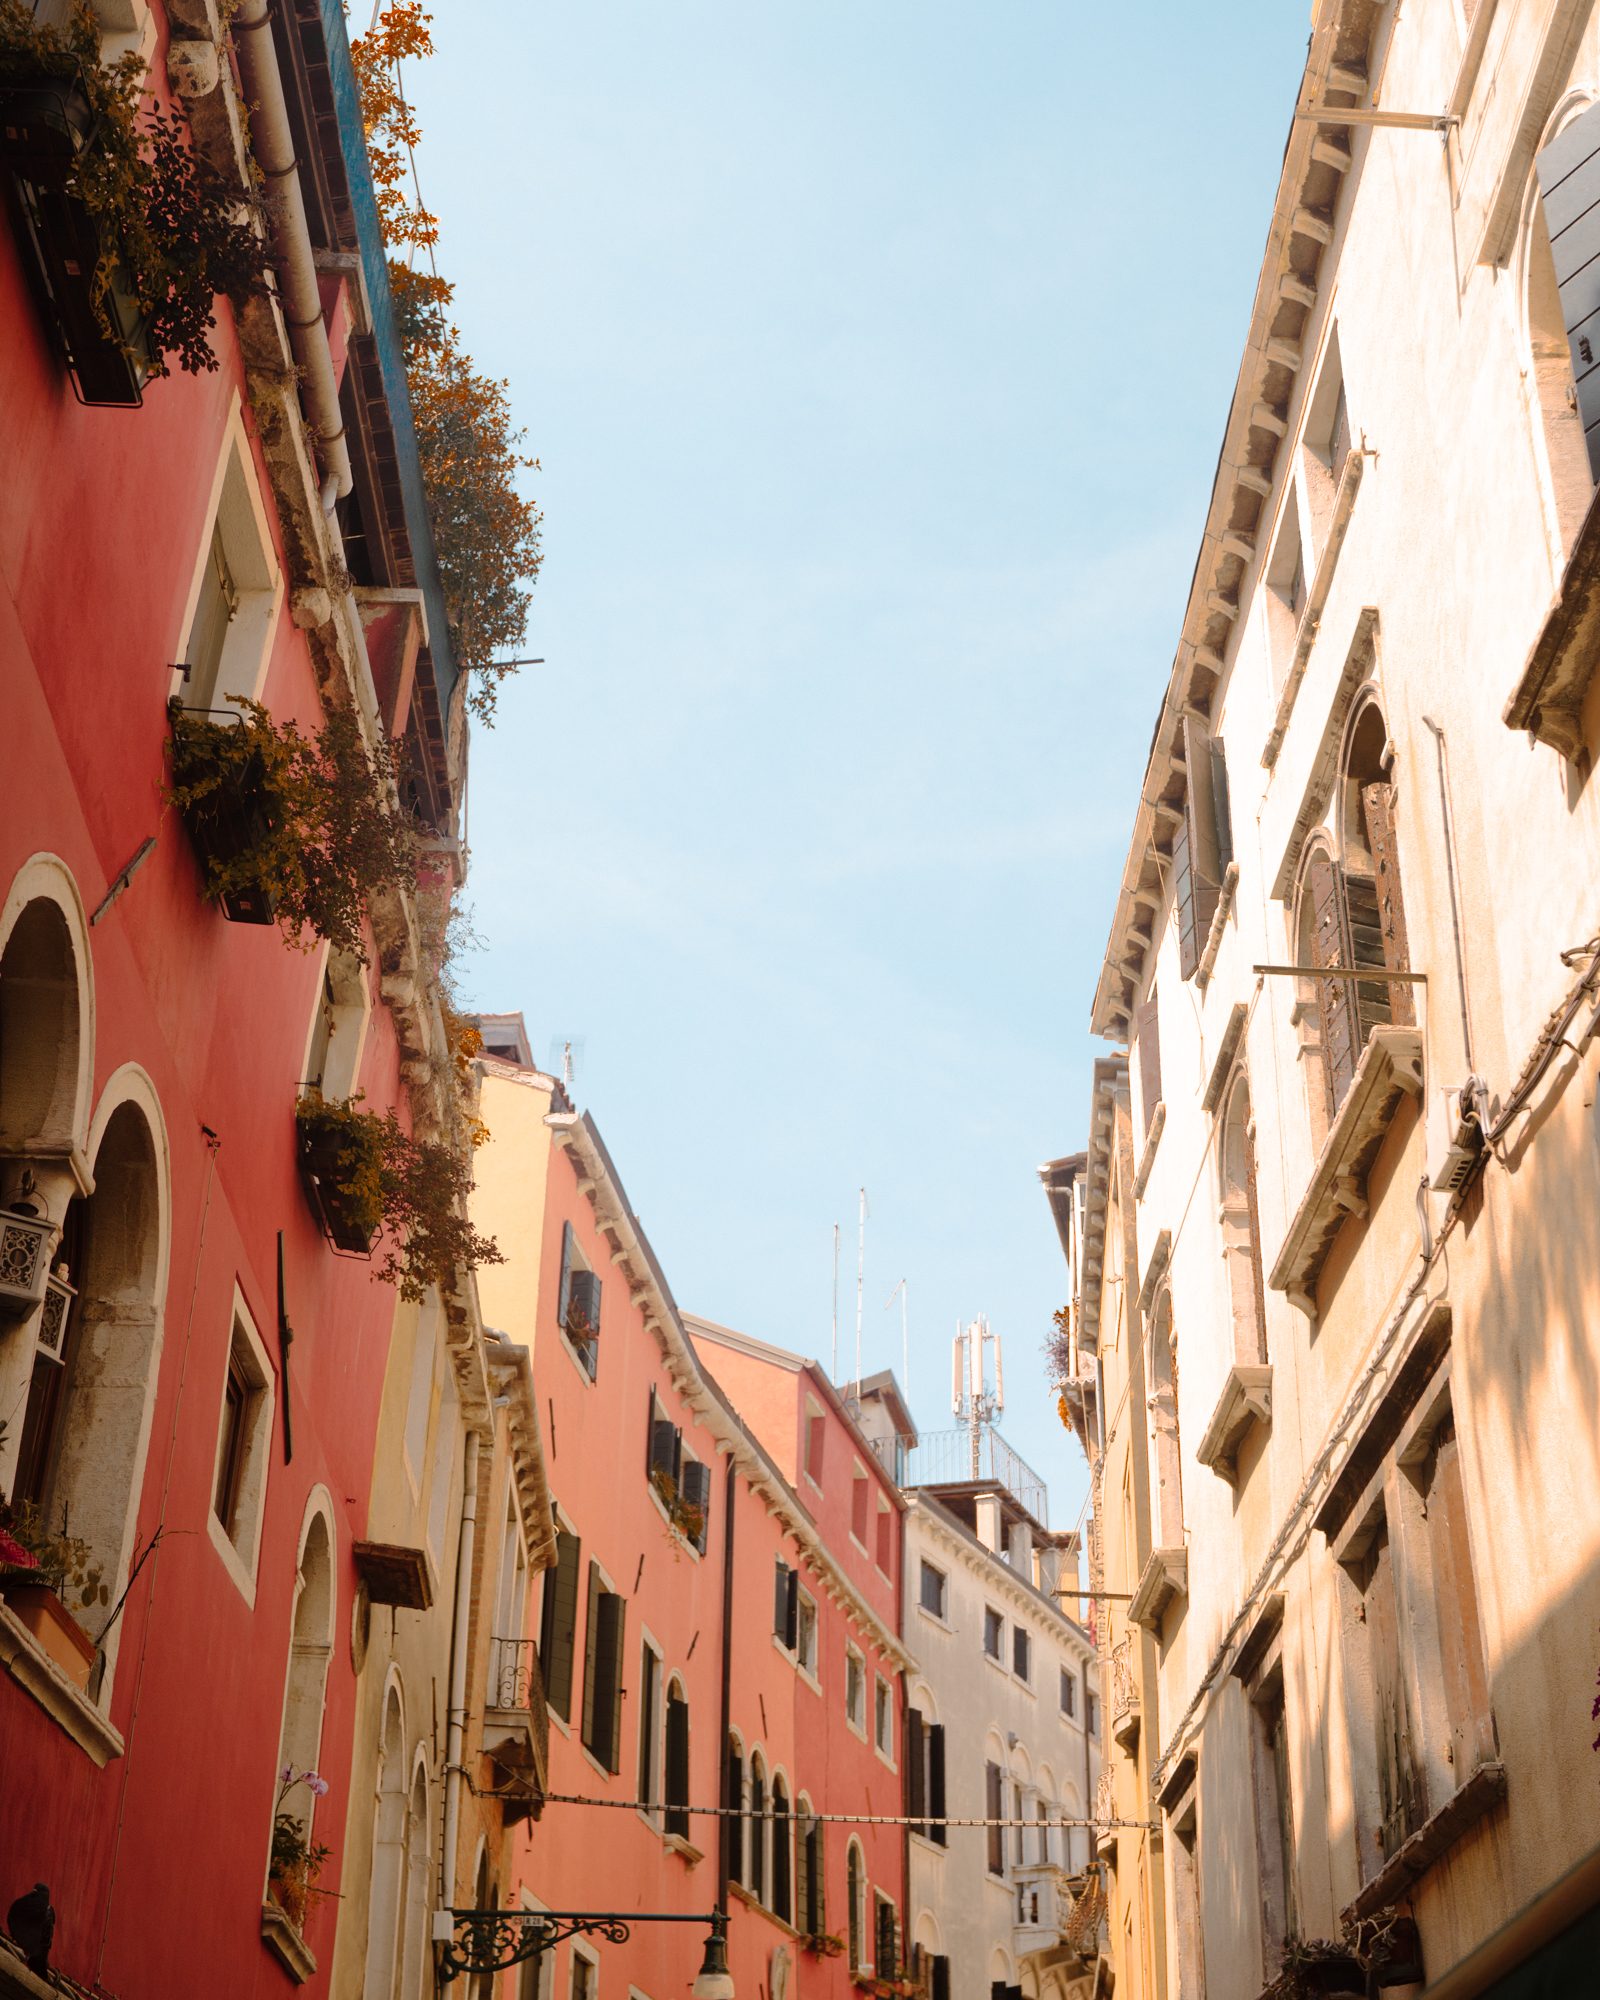 Colorful buildings in Venice Italy